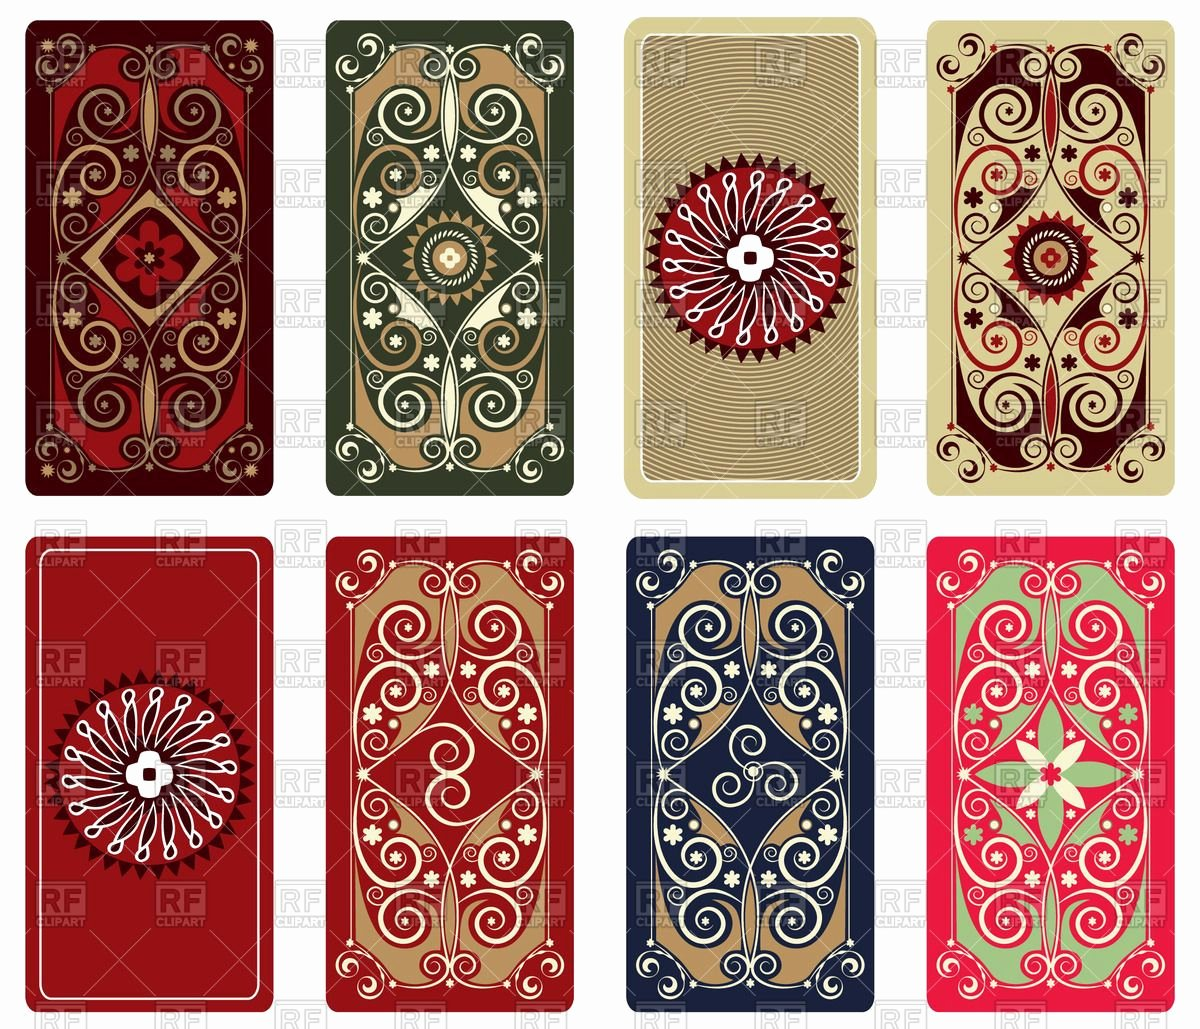 Playing Card Design Template New Pin by Karen Swartz On Tarot Pinterest